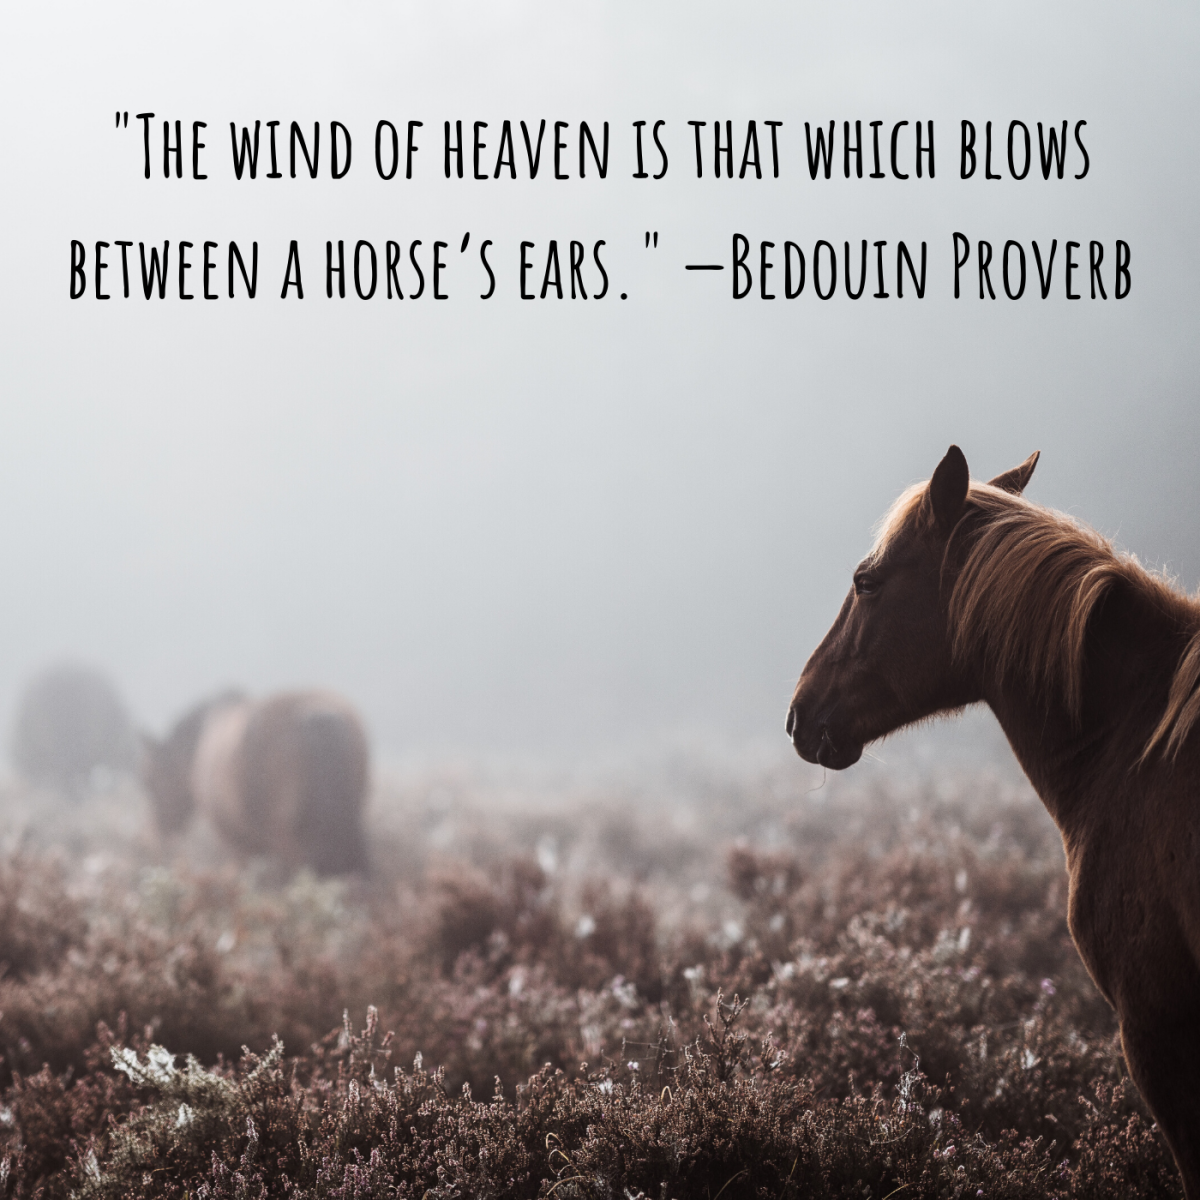 """The wind of heaven is that which blows between a horse's ears."" —Bedouin Proverb"